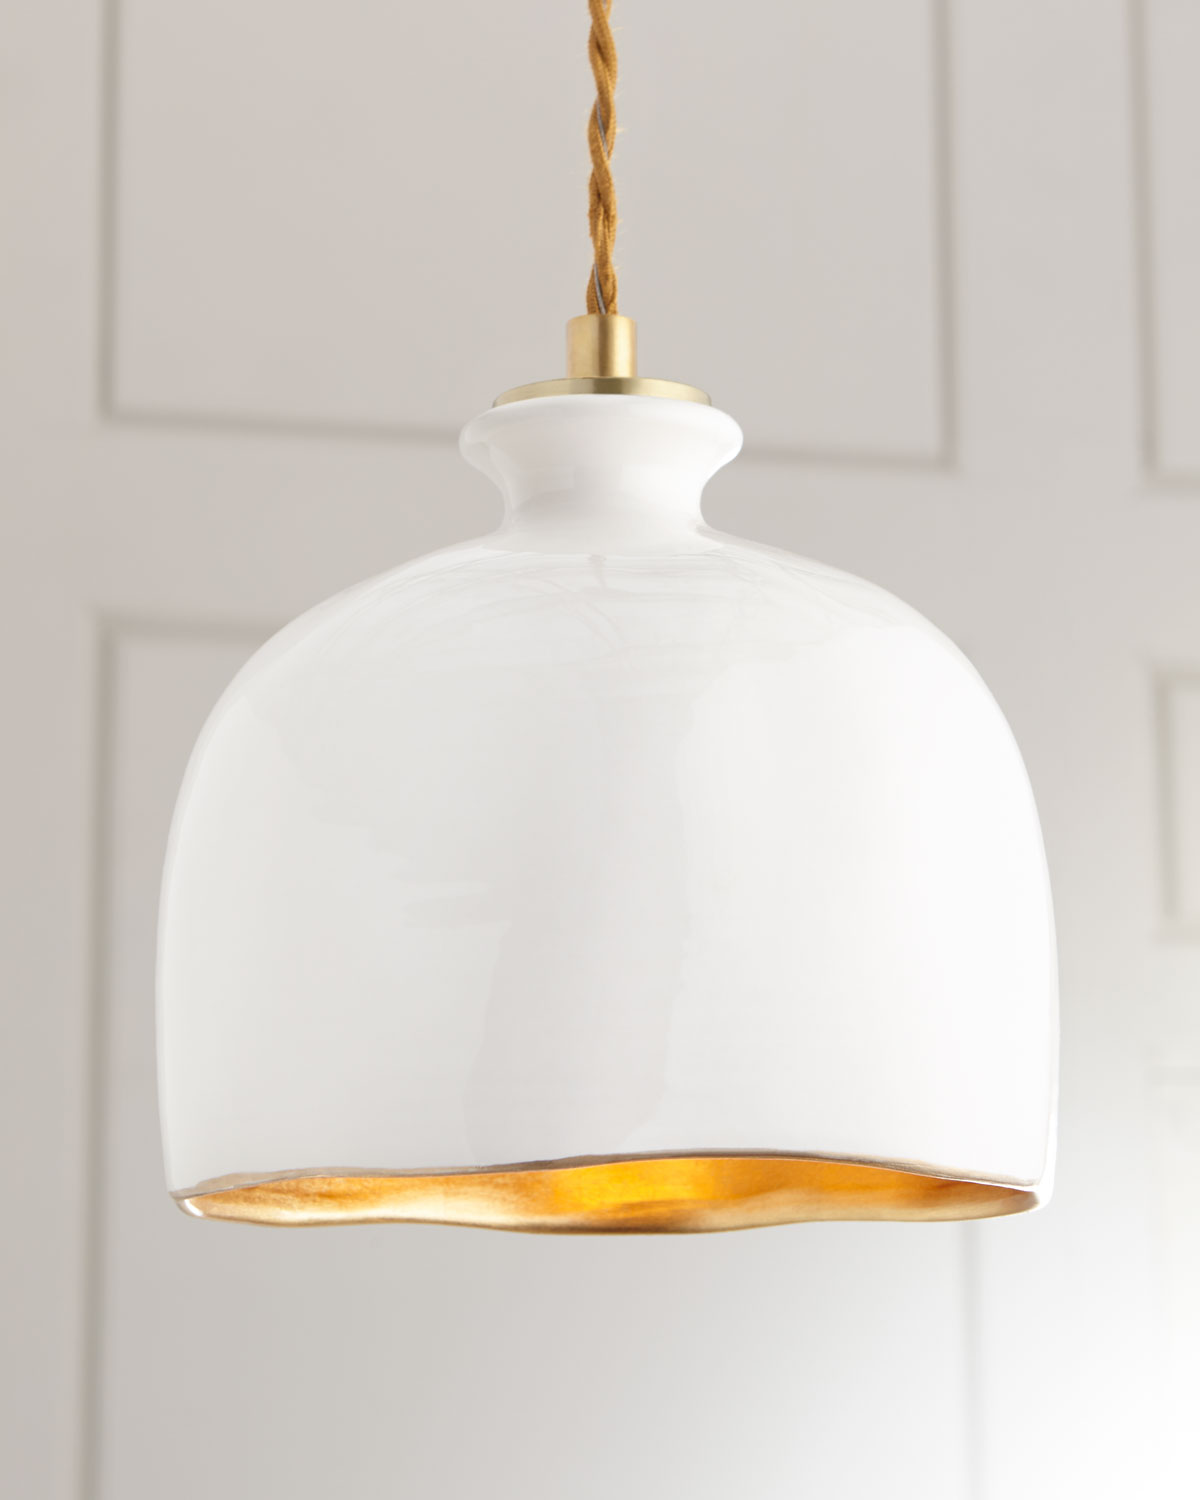 Neiman Marcus Lighting Inside Bianca Dome 1light Pendant Regina Andrew Design Neiman Marcus